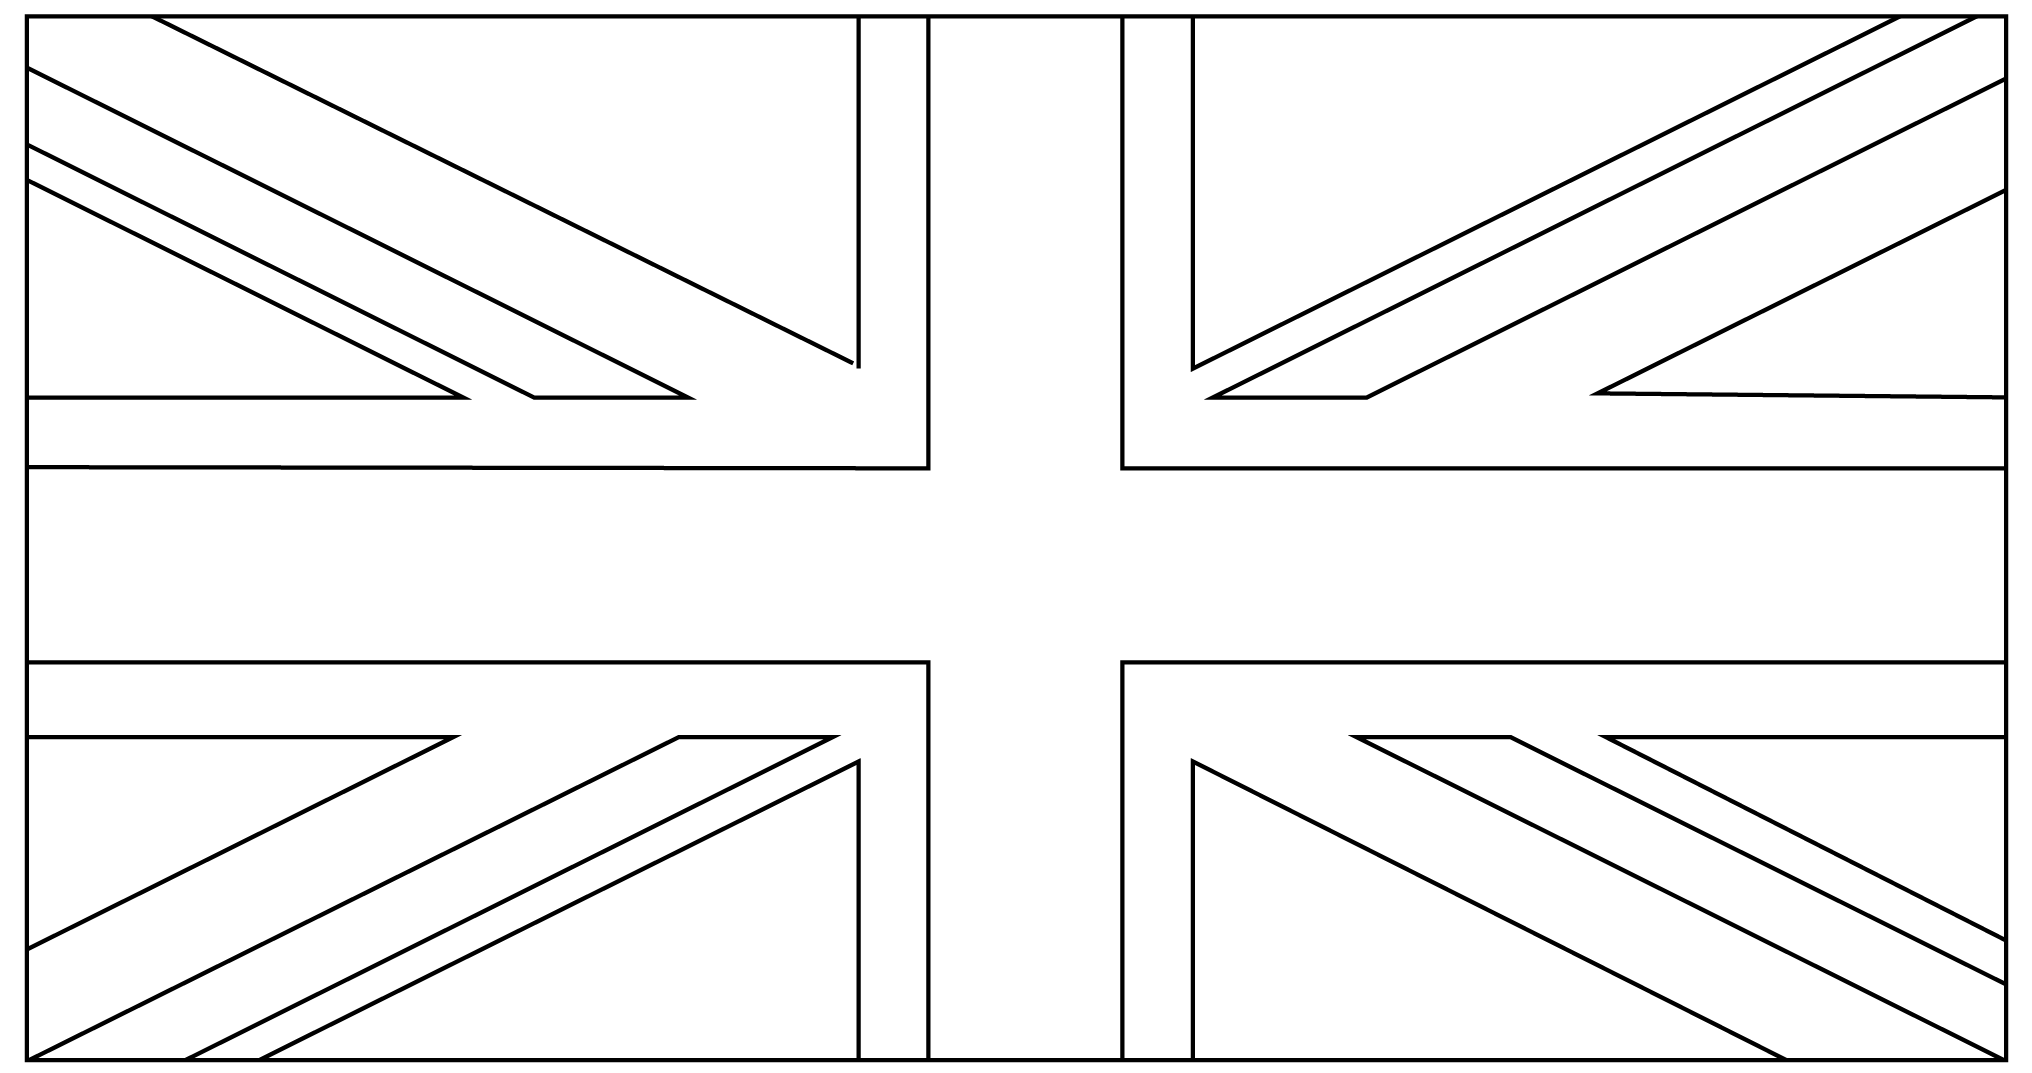 Download This Free Union Jack Image to Add to Your Craft Projects ...